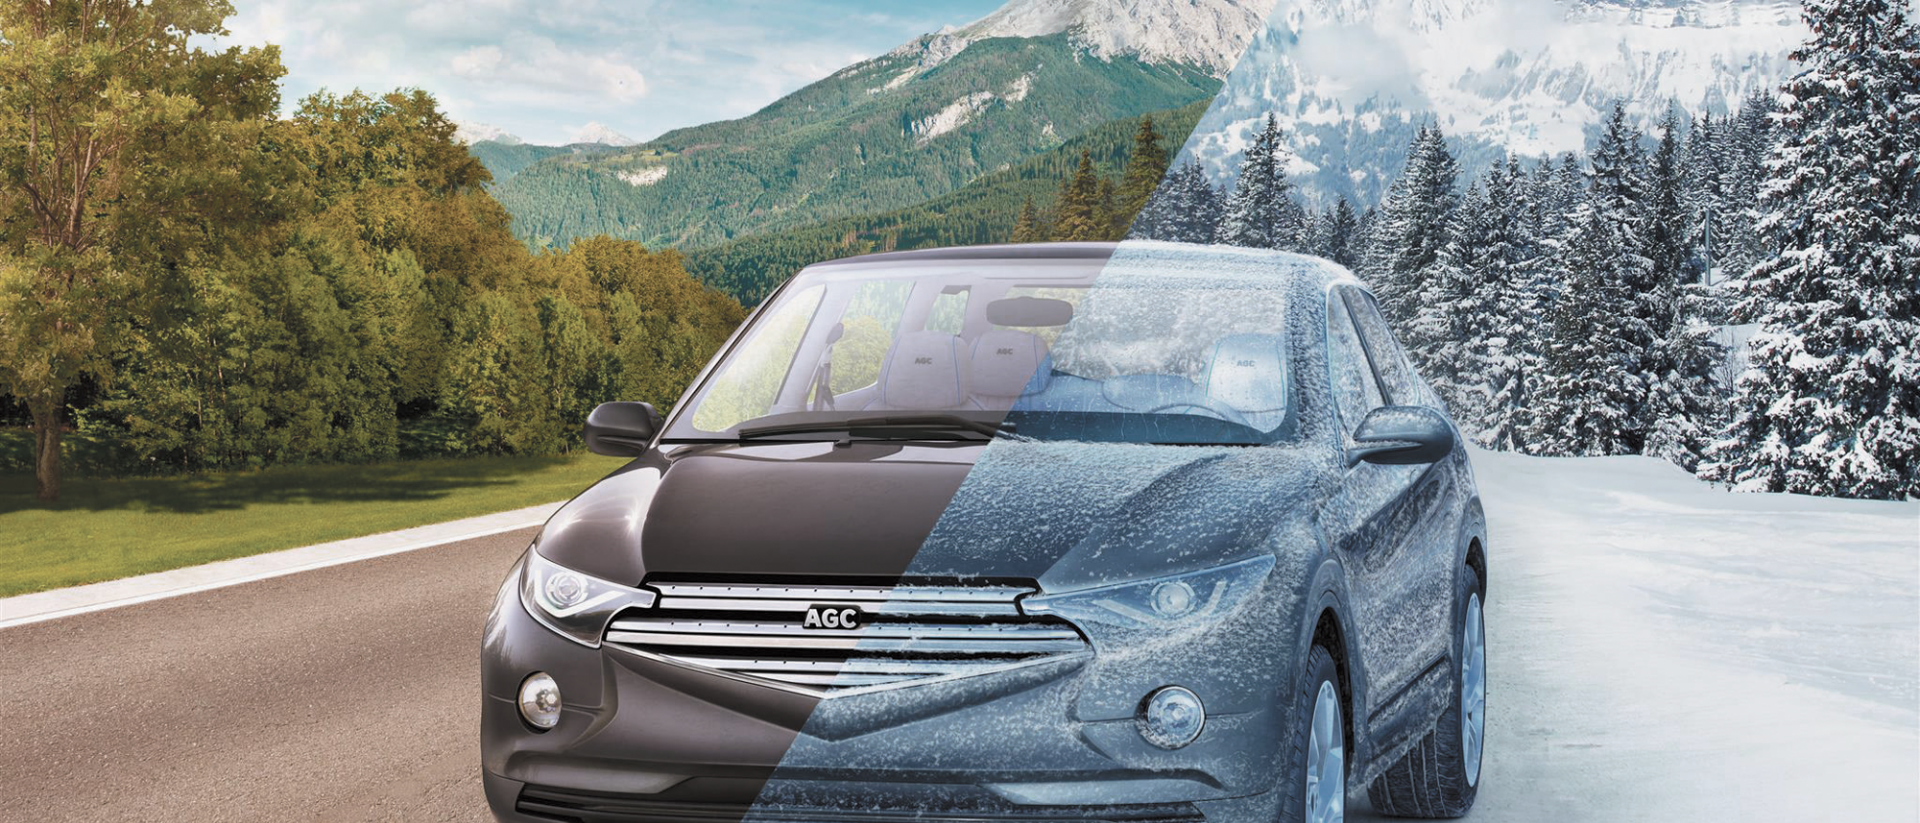 The windshield for all seasons comfort